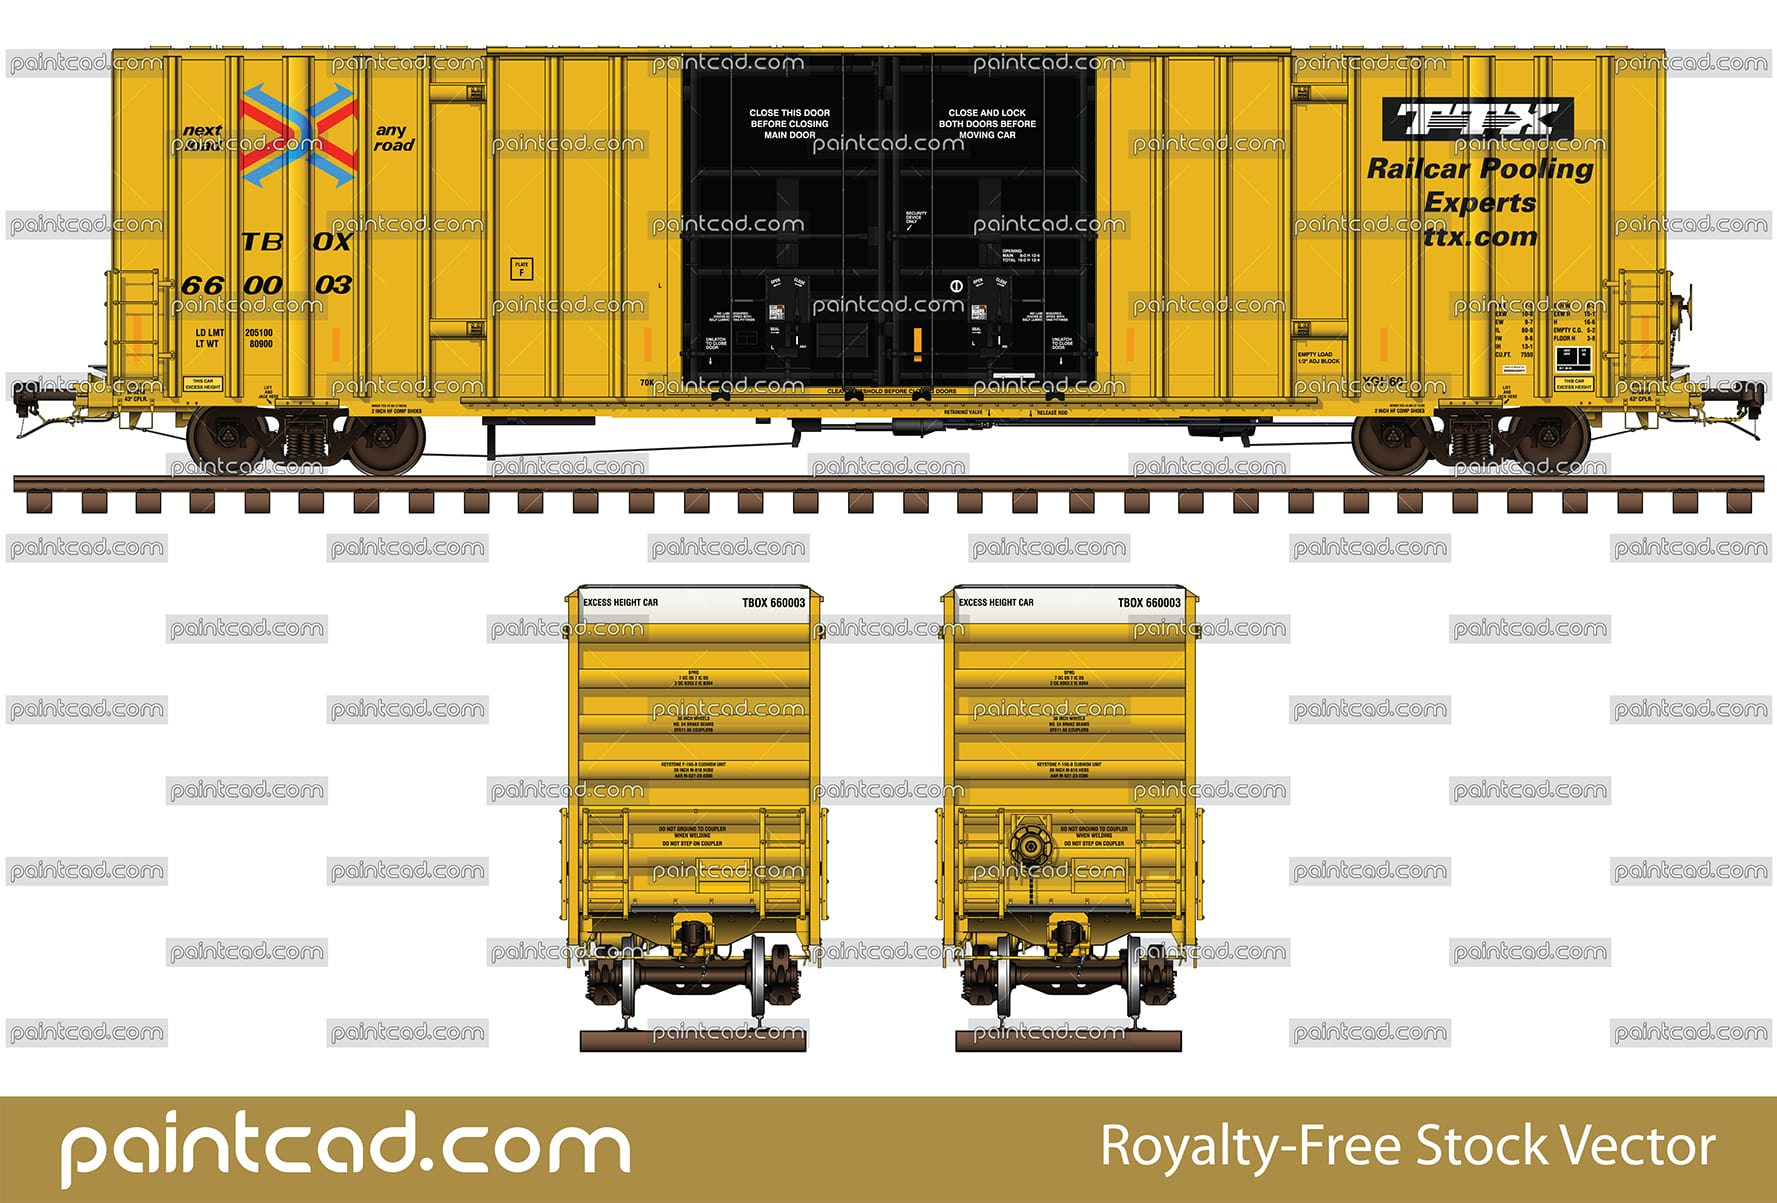 Box car 60 ft painted yellow of Railcar Pooling Experts TTX - vector illustration